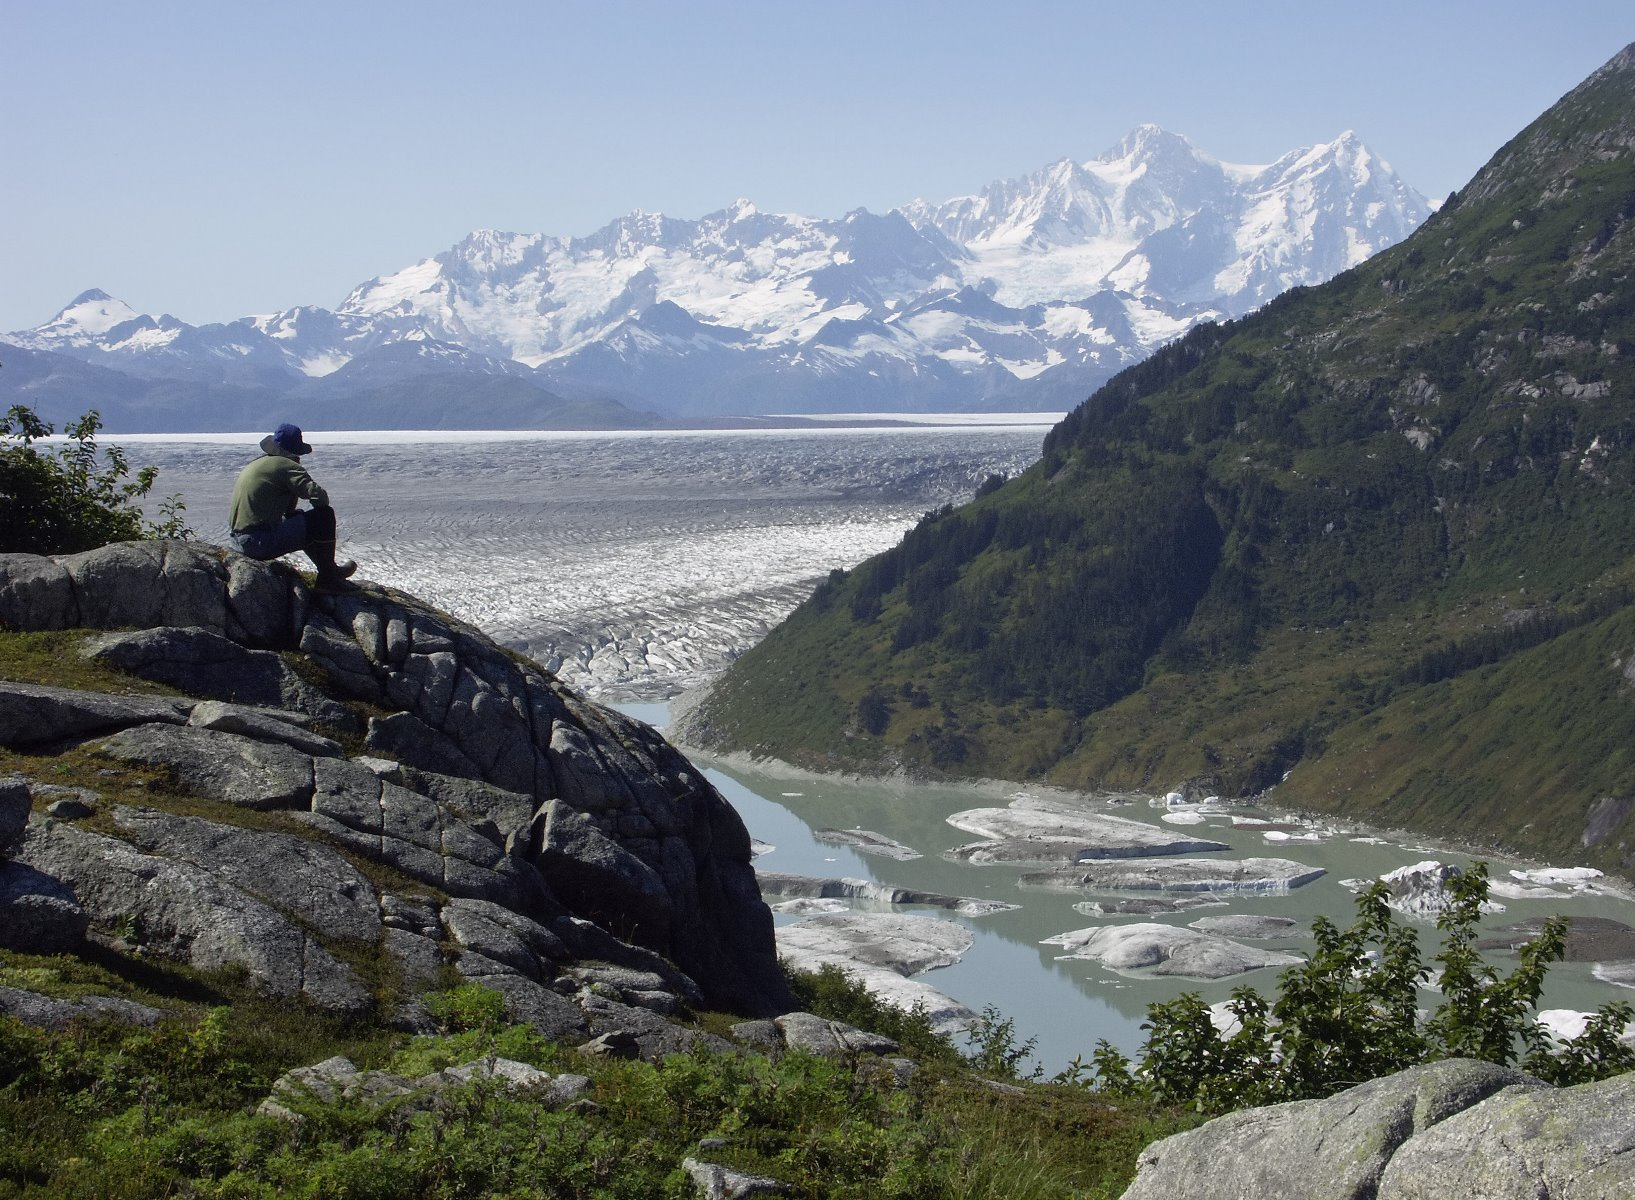 Views over Glacier Bay National Park.